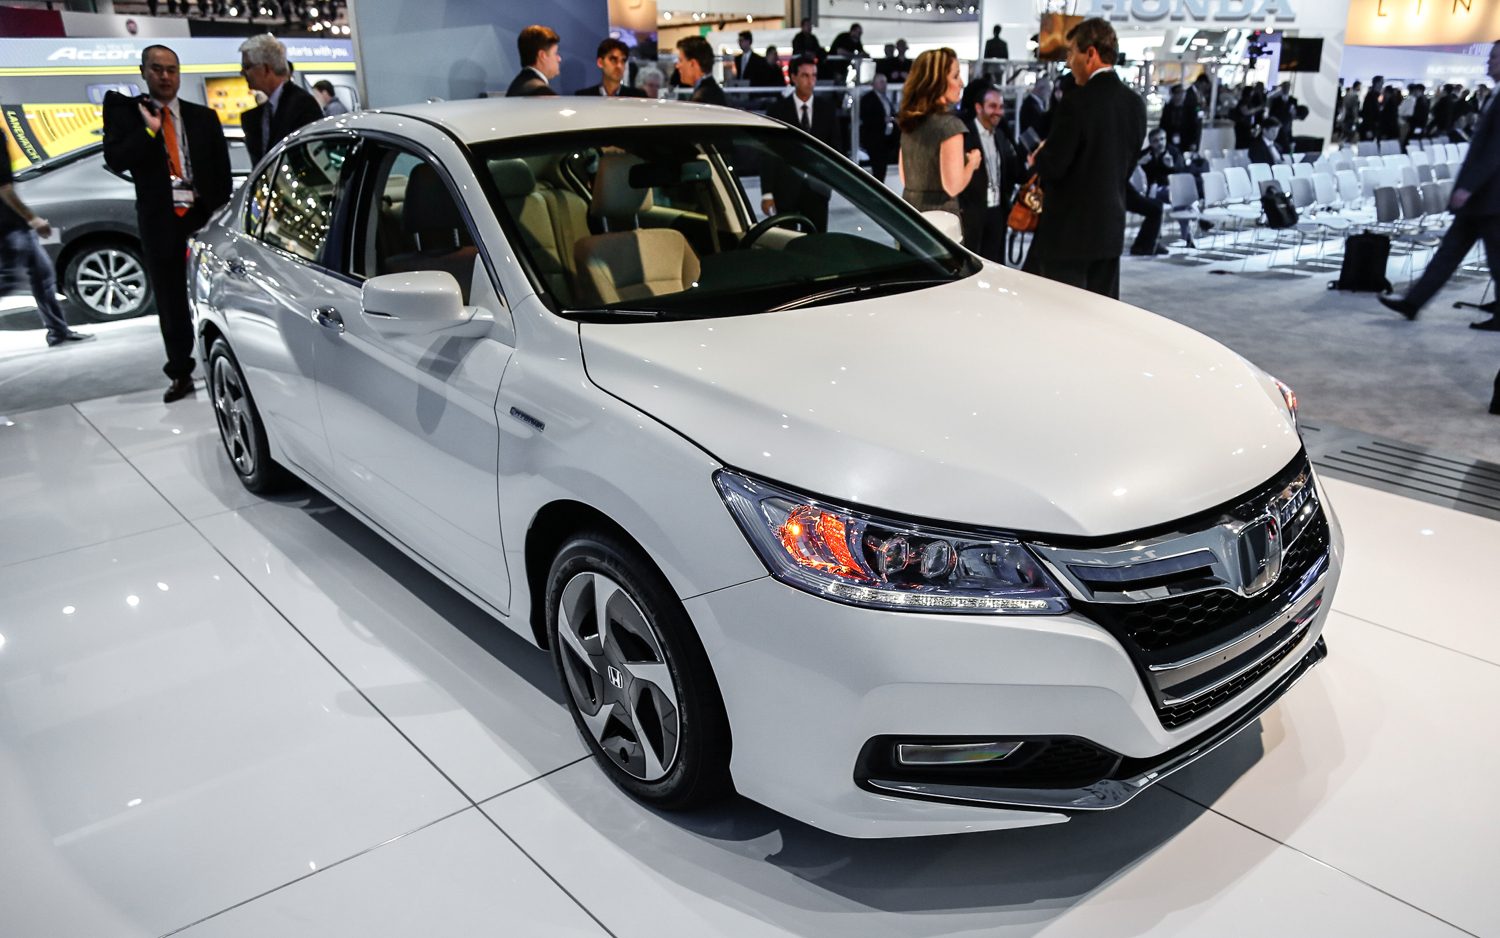 2014 Honda Accord Plug In Hybrid Now On Sale In California, New York